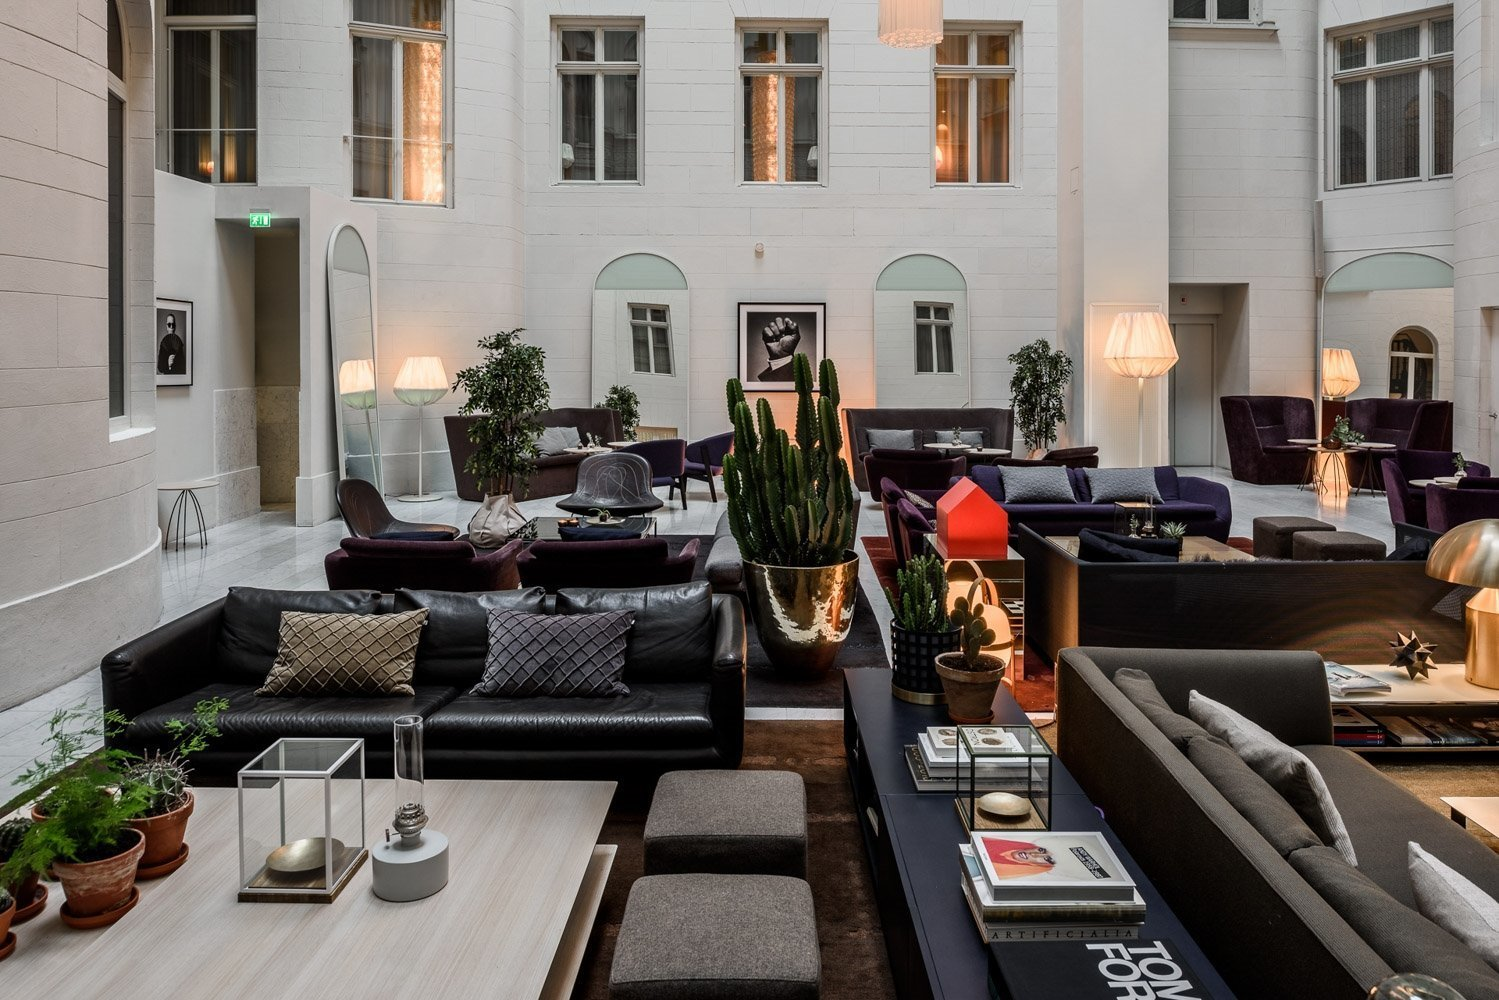 Living Room, Sofa, Chair, Coffee Tables, and Floor Lighting  Best Photos from Nobis Hotel